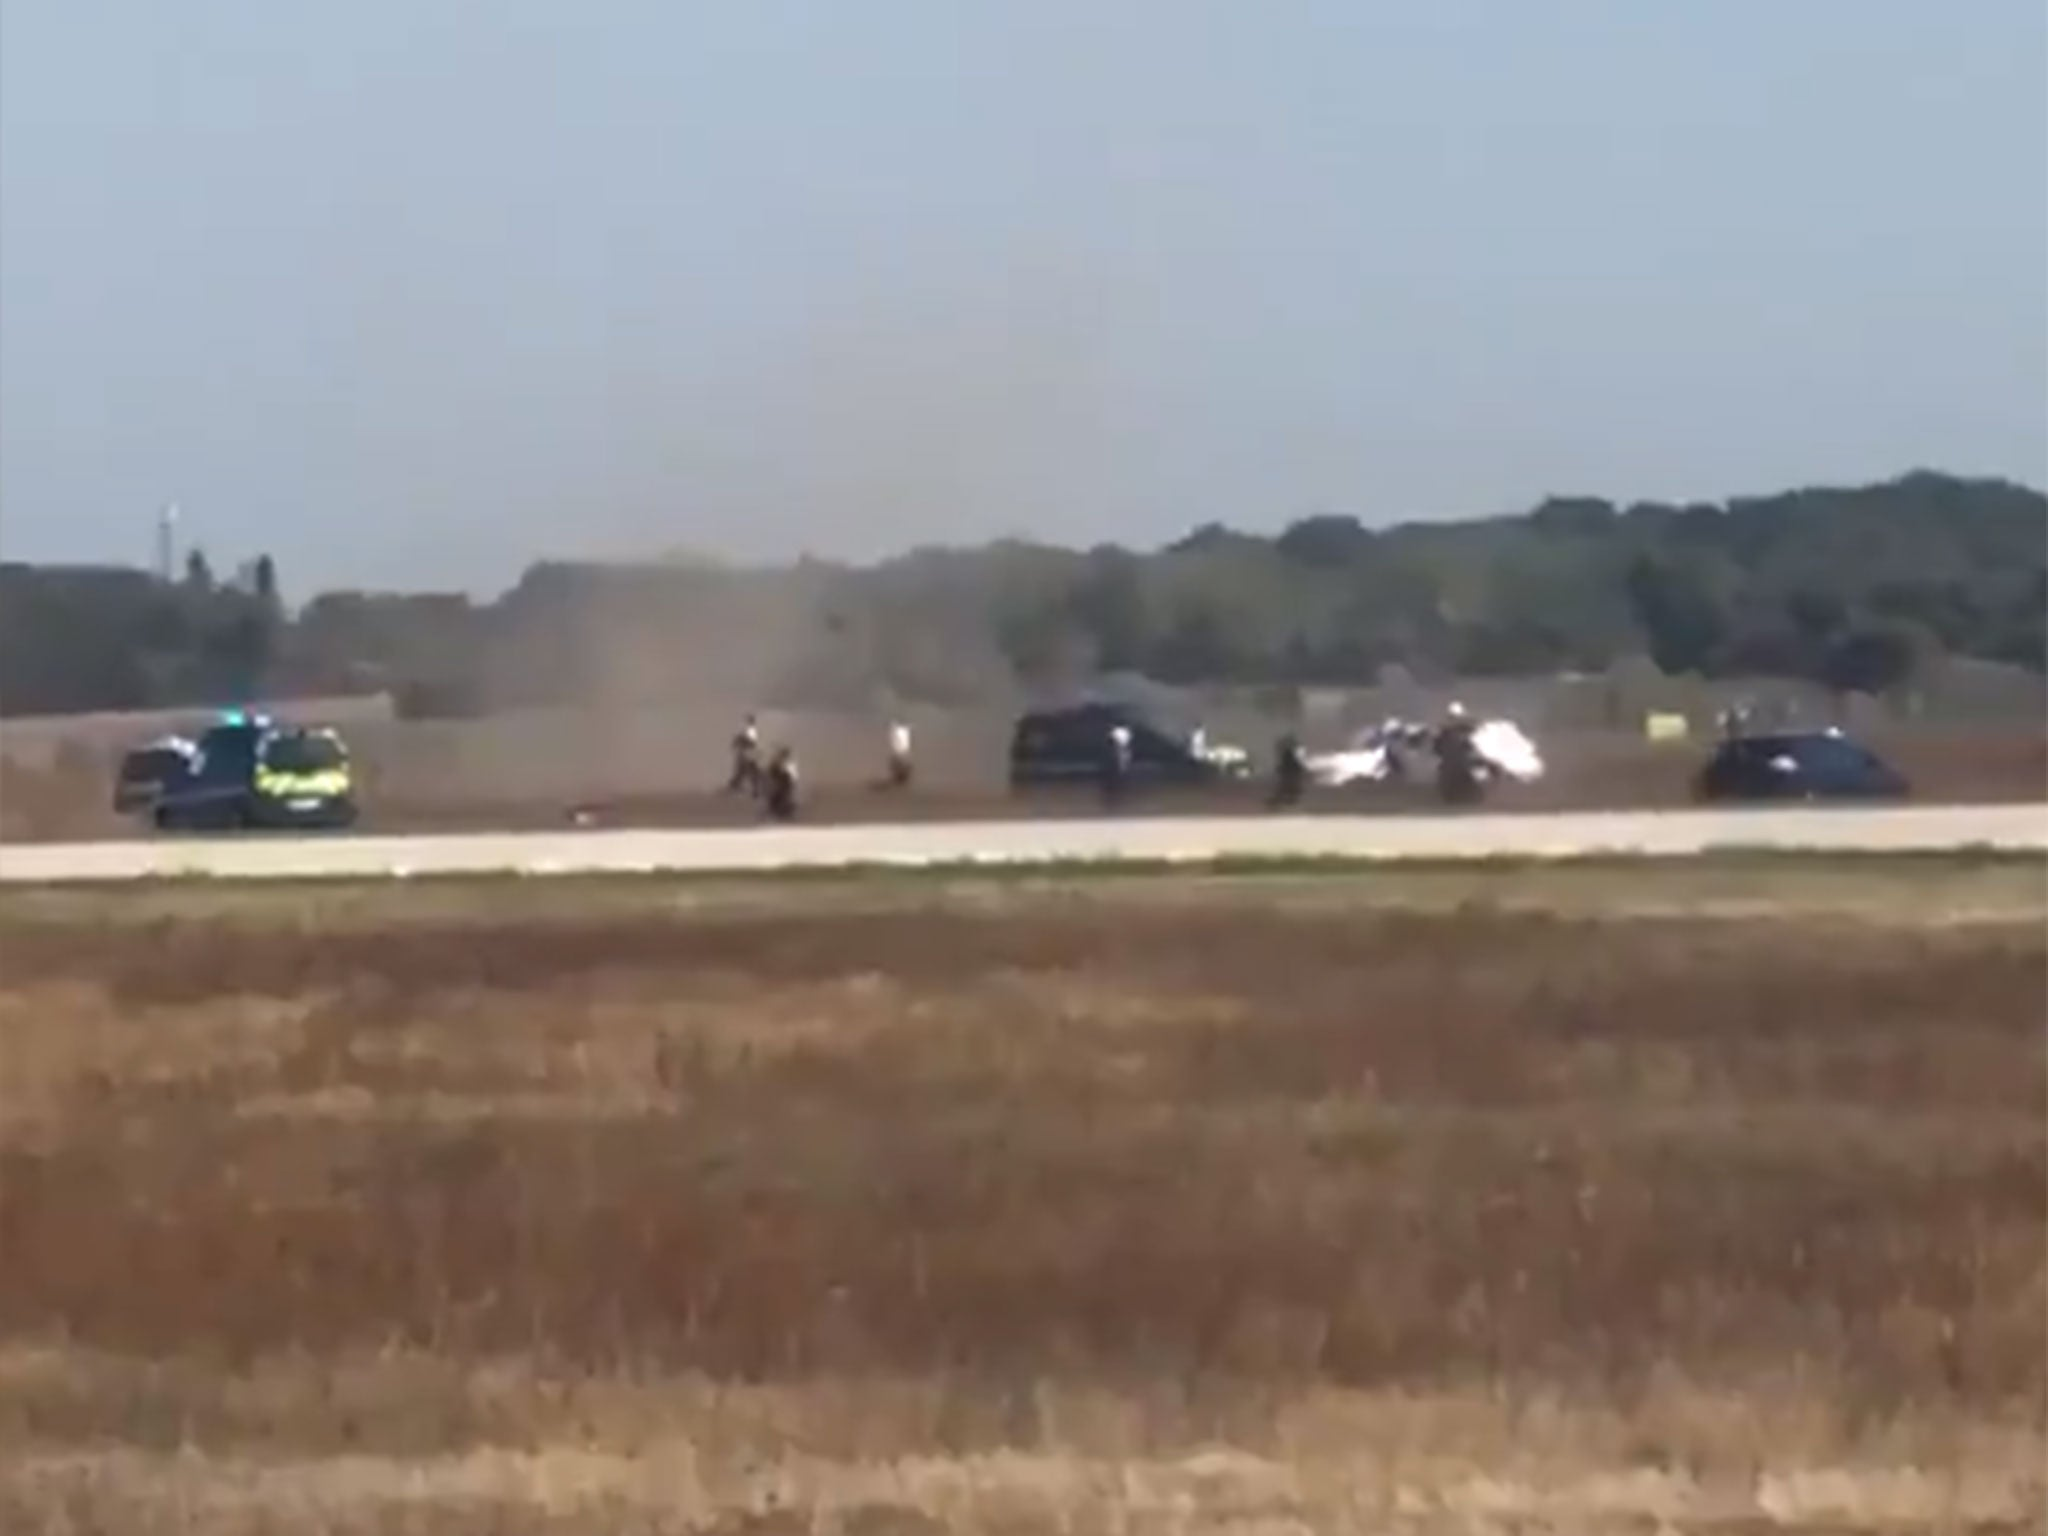 Lyon airport incident: High-speed car chase on runway forces